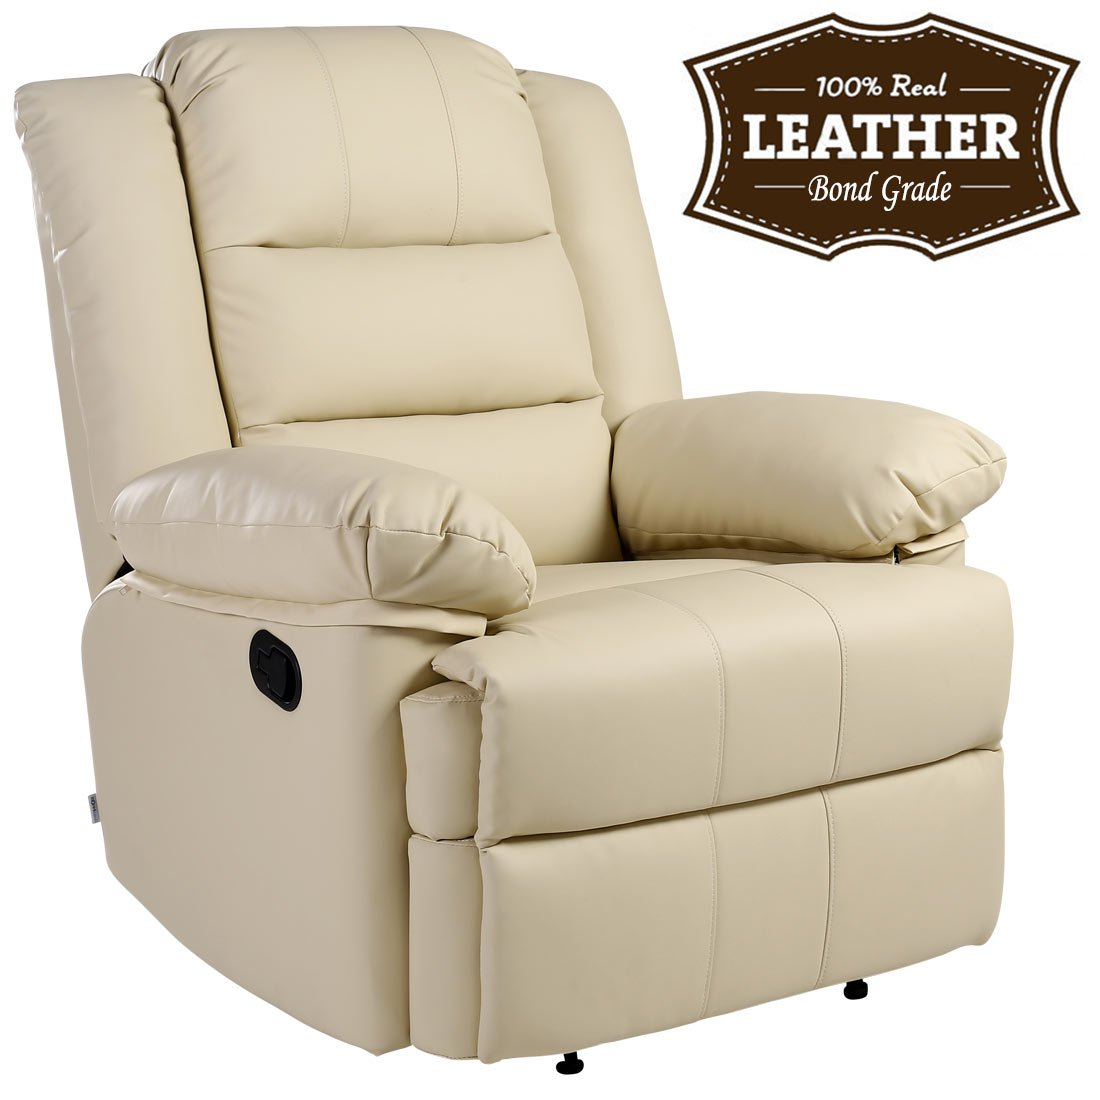 Top 10 Best Recliner Chairs 2019-2020 on Flipboard by ...